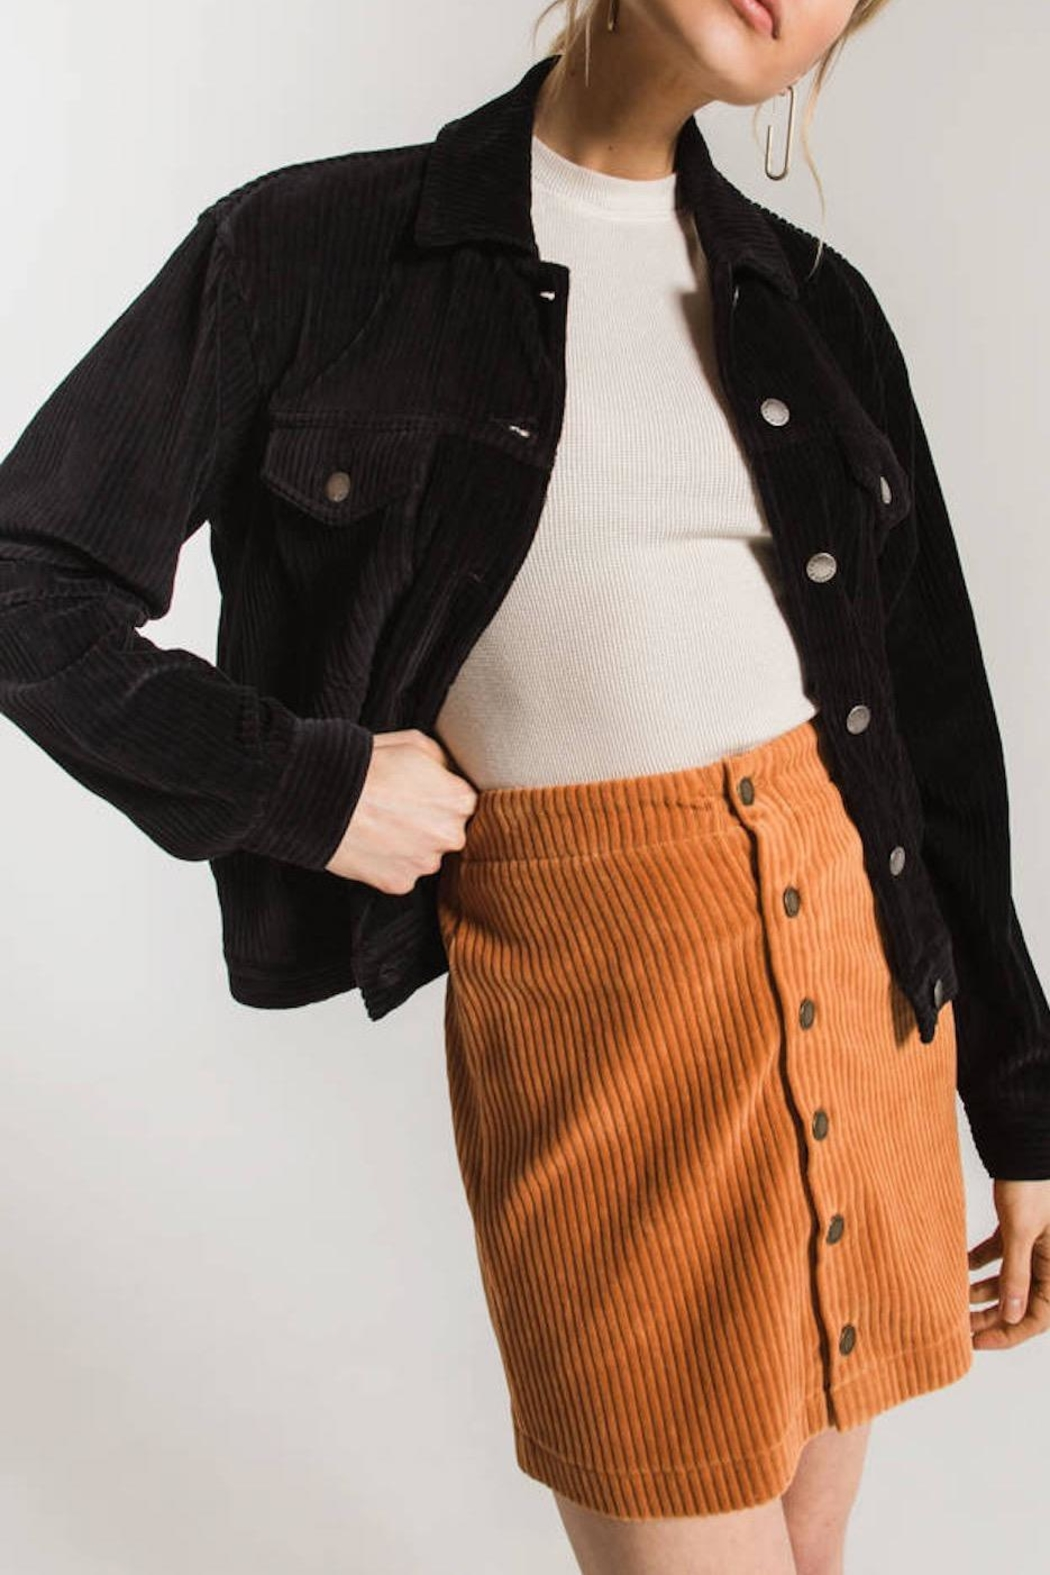 z supply Knit Corduroy Skirt - Front Cropped Image